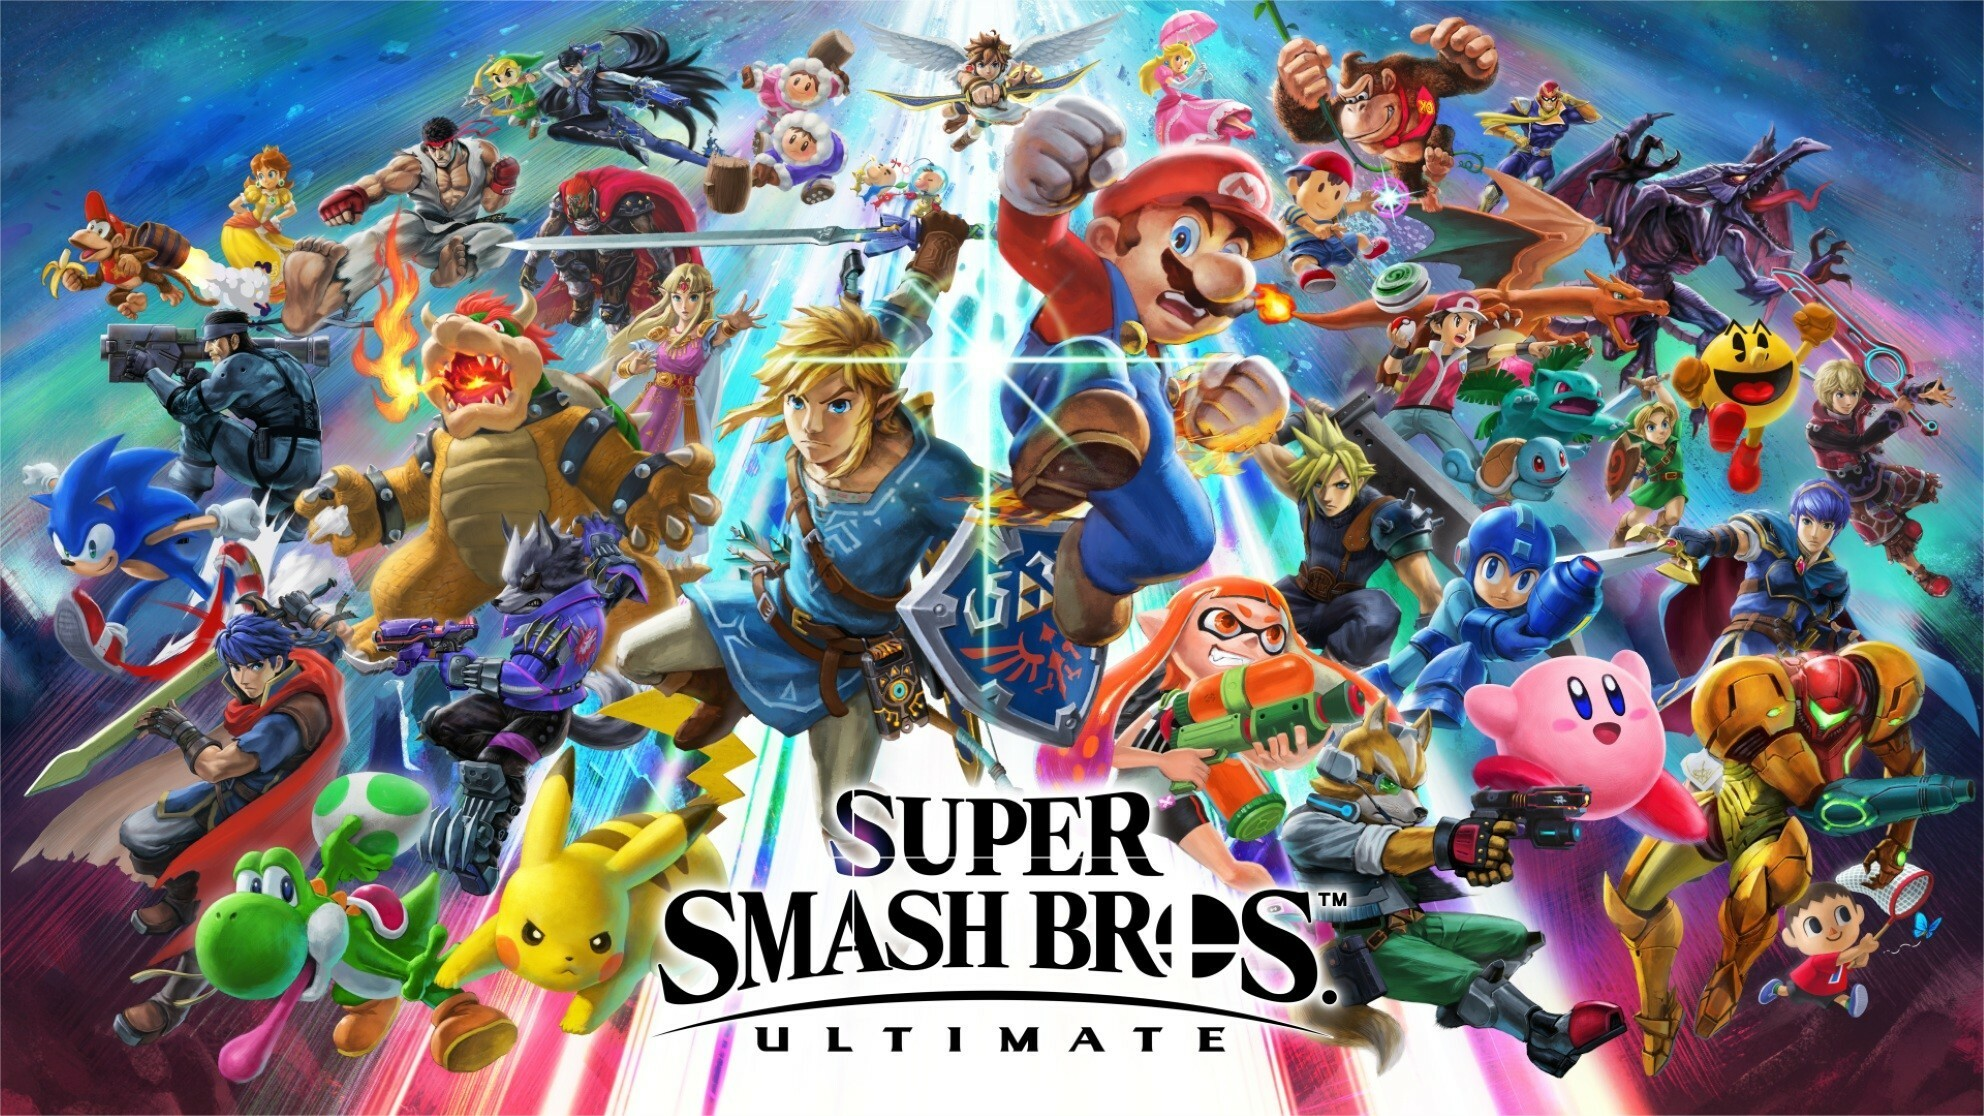 Smash Bros. Ultimate the second most downloaded Nintendo Switch game